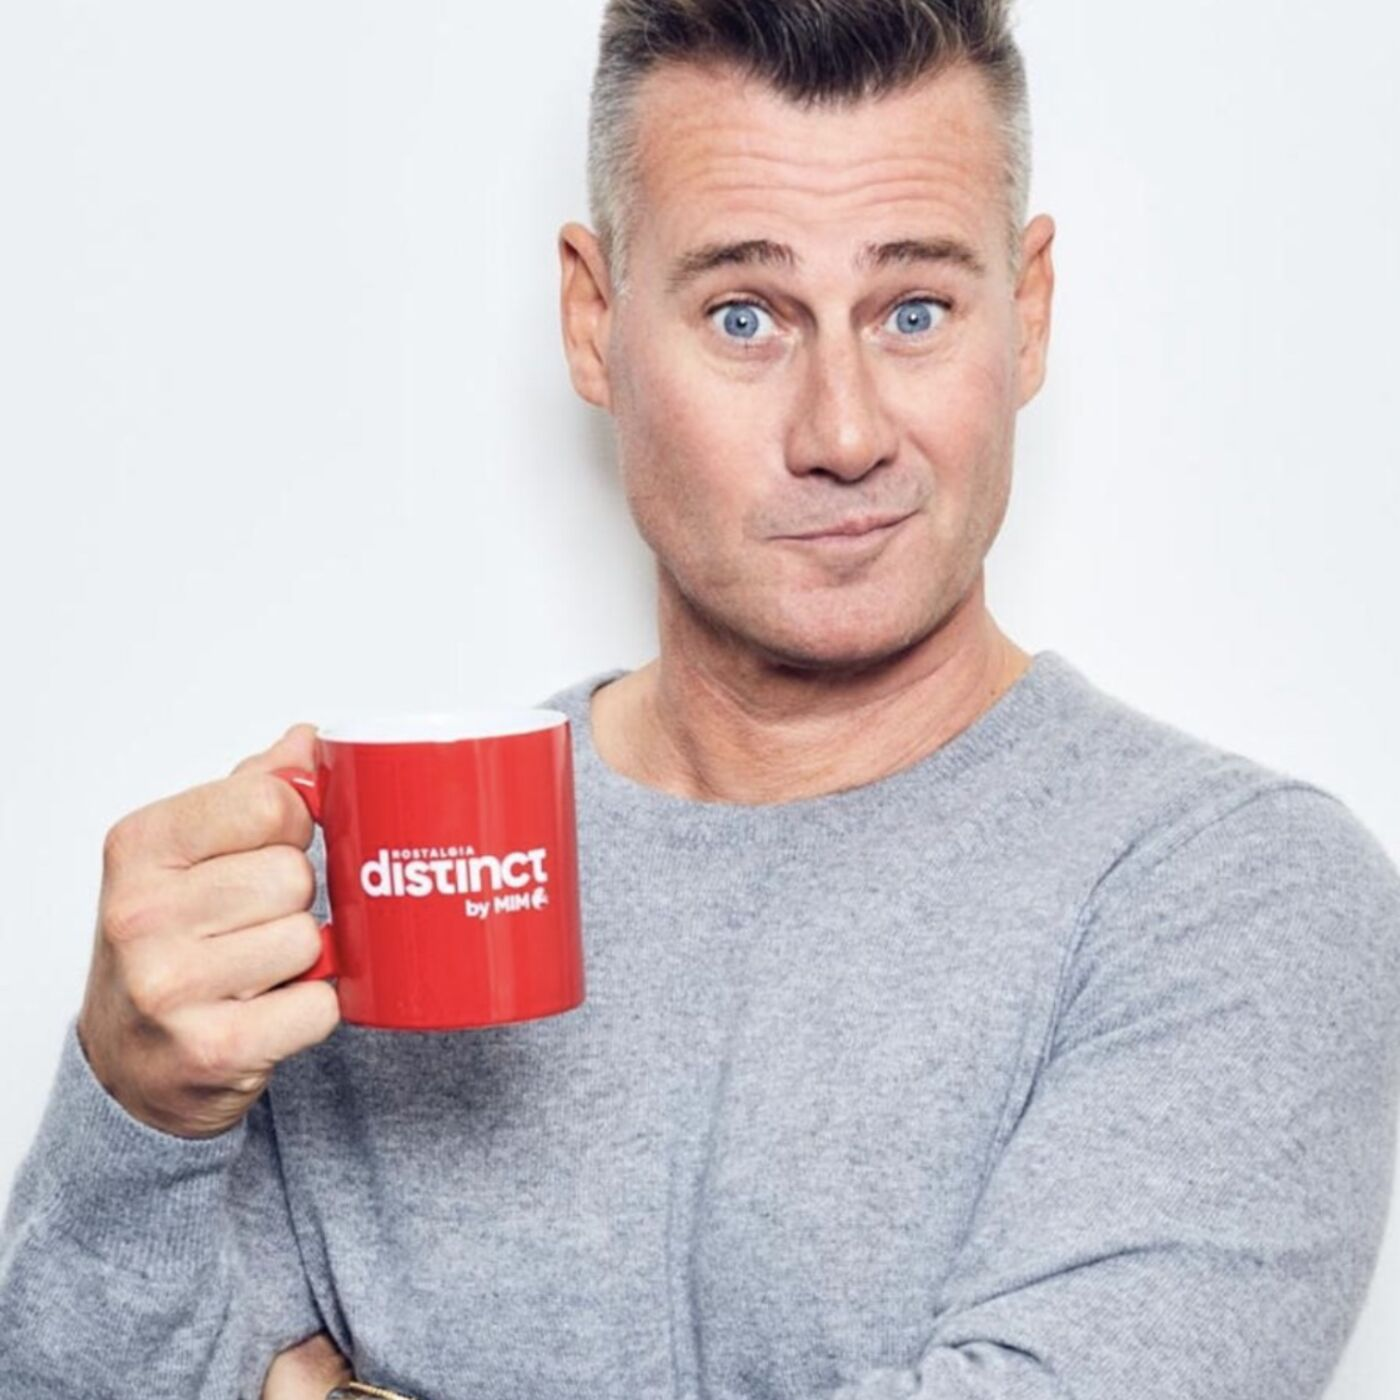 Nostalgic for the 90s: Tim Vincent on Blue Peter, Emmerdale, Hollywood, his new comedy show - and Donald Trump!